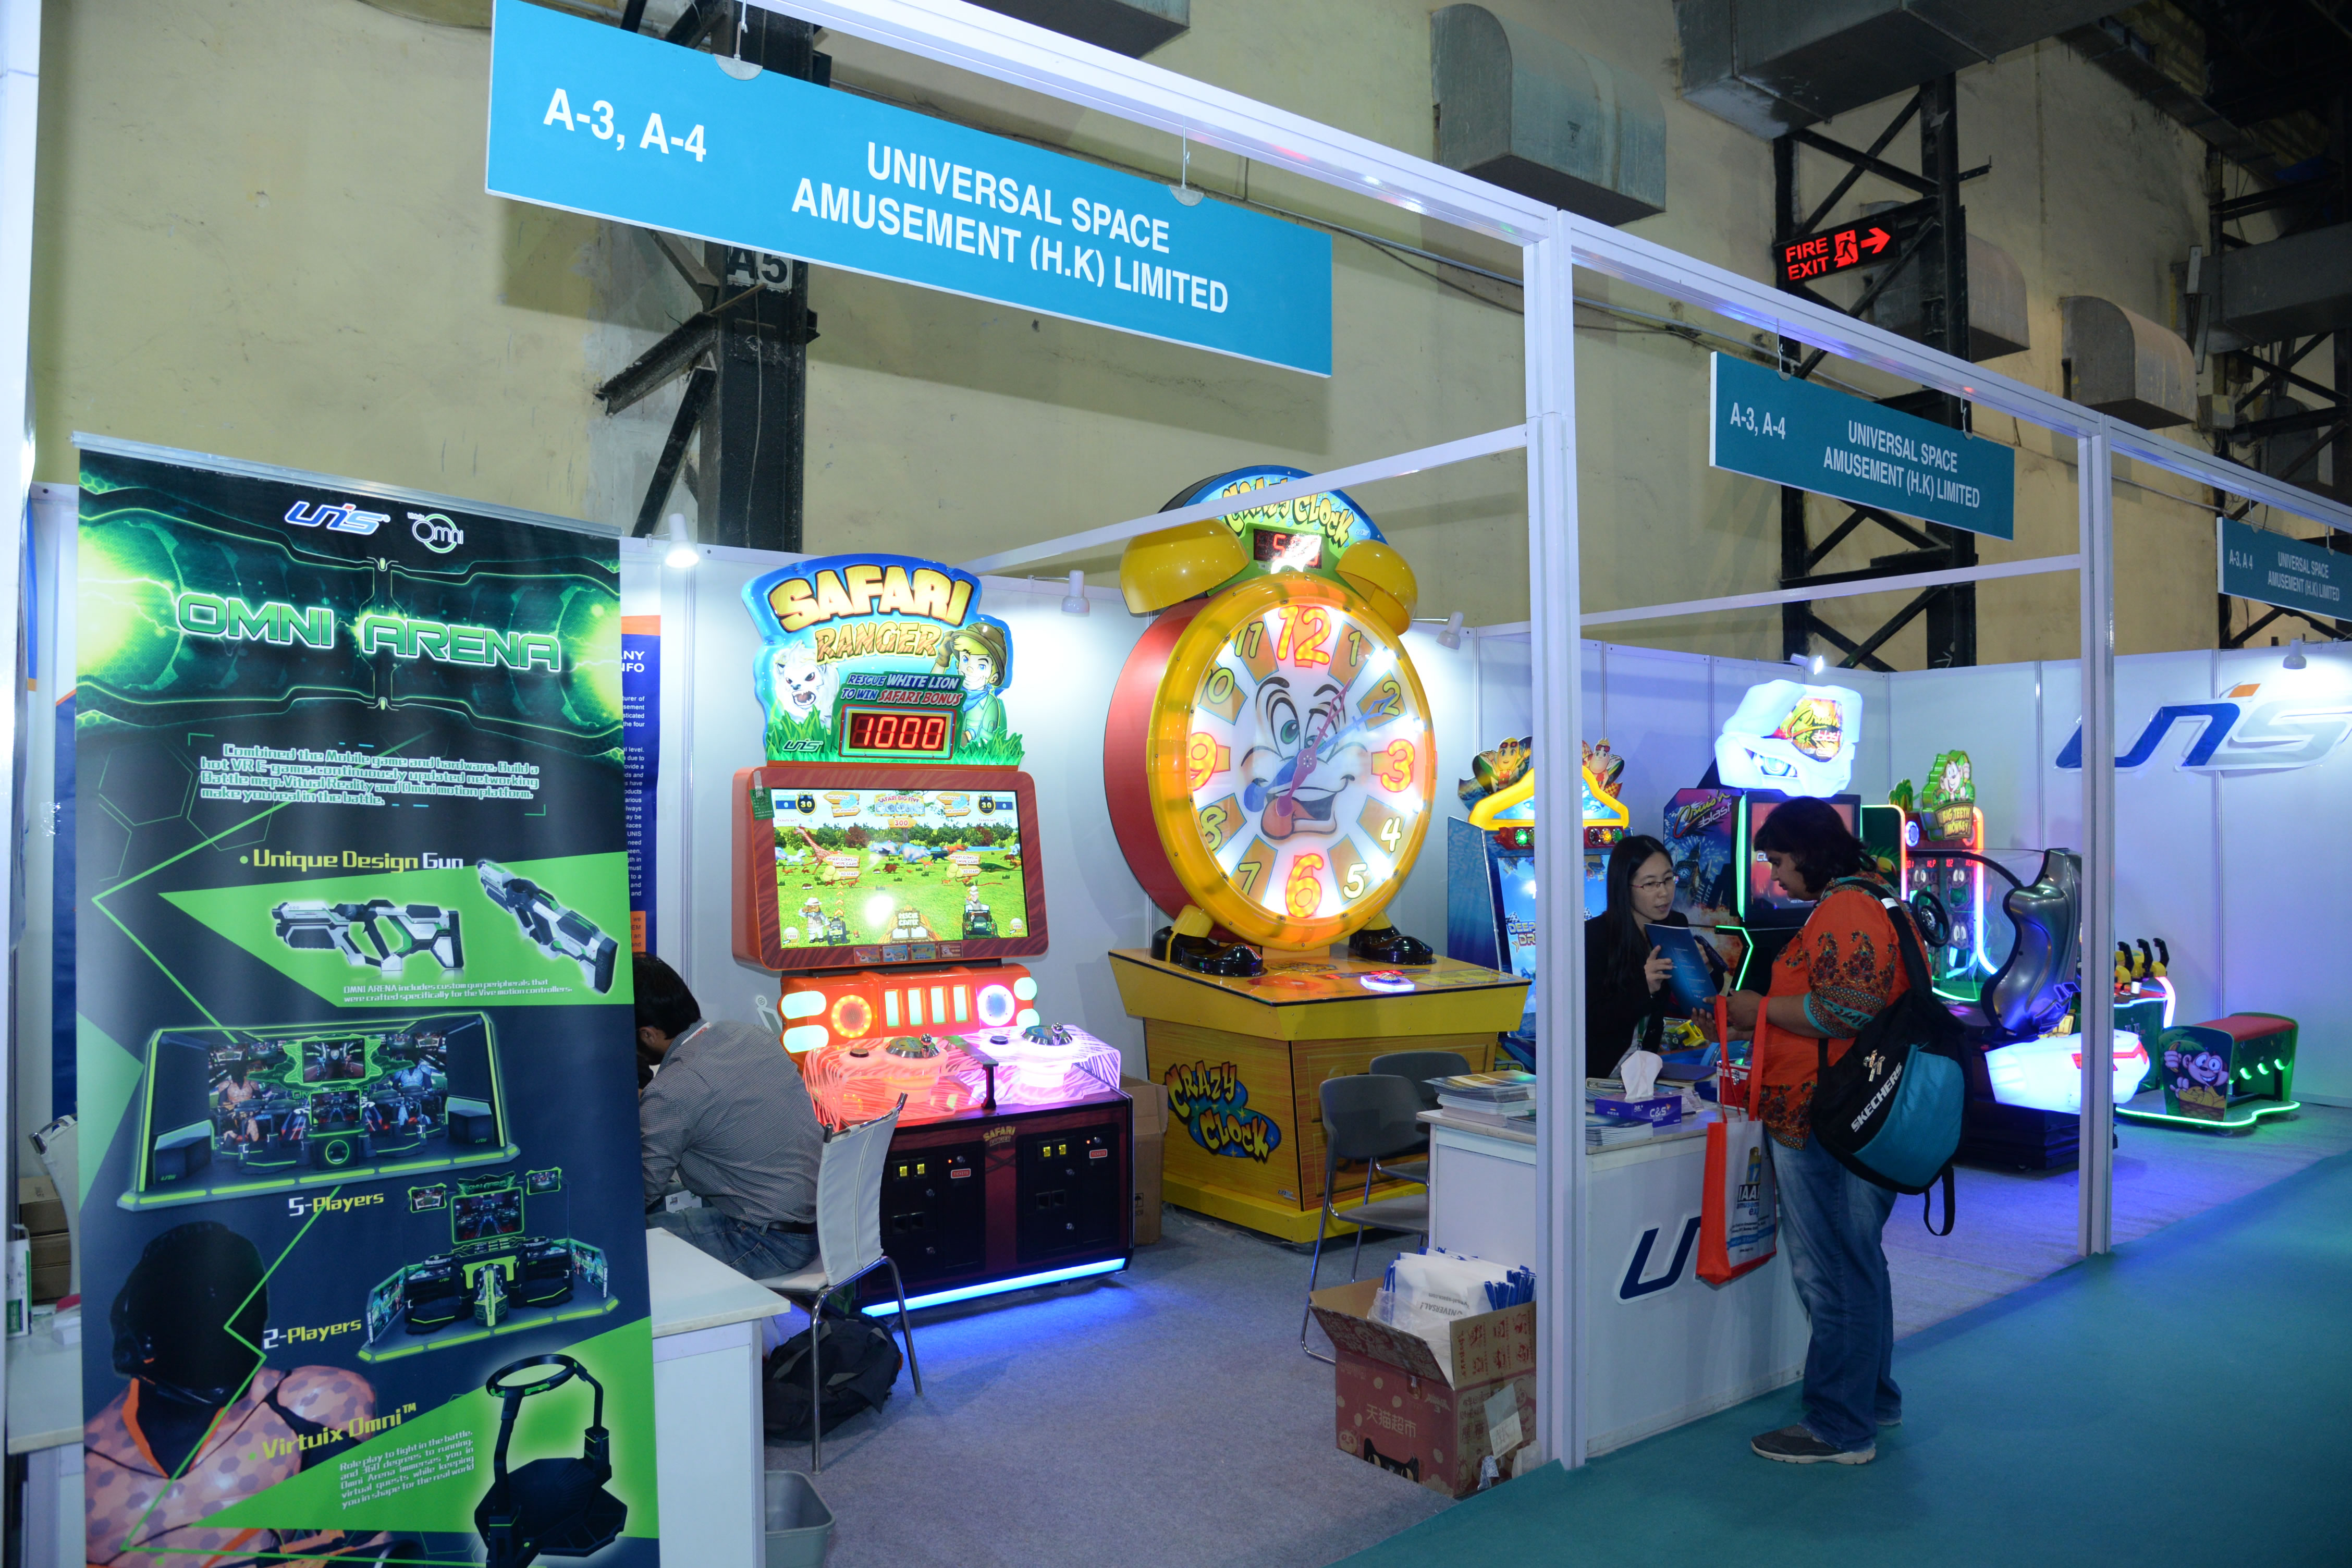 17th IAAPI Amusement Expo 2017